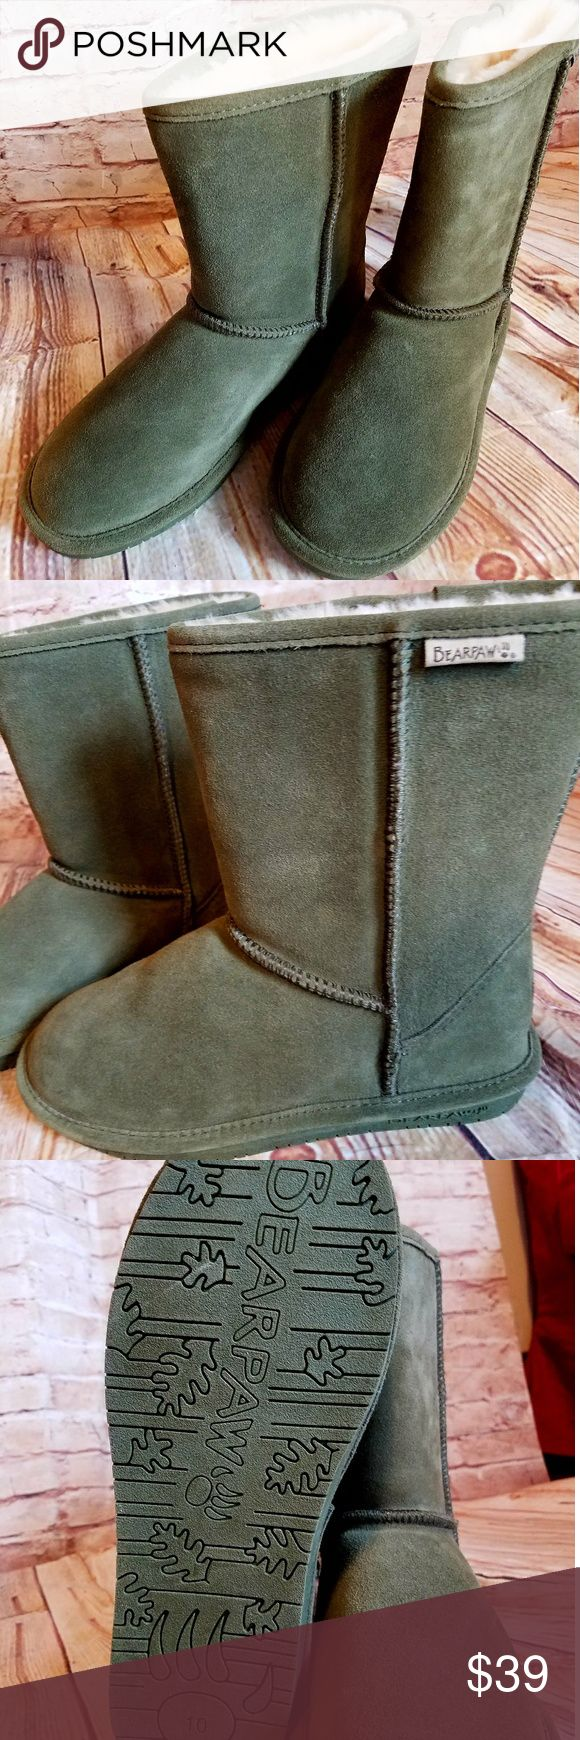 BEARPAW BOOTS FOR WOMEN SIZE 10M GREEN NEW New boots no original box w tag BearPaw Shoes Winter & Rain Boots